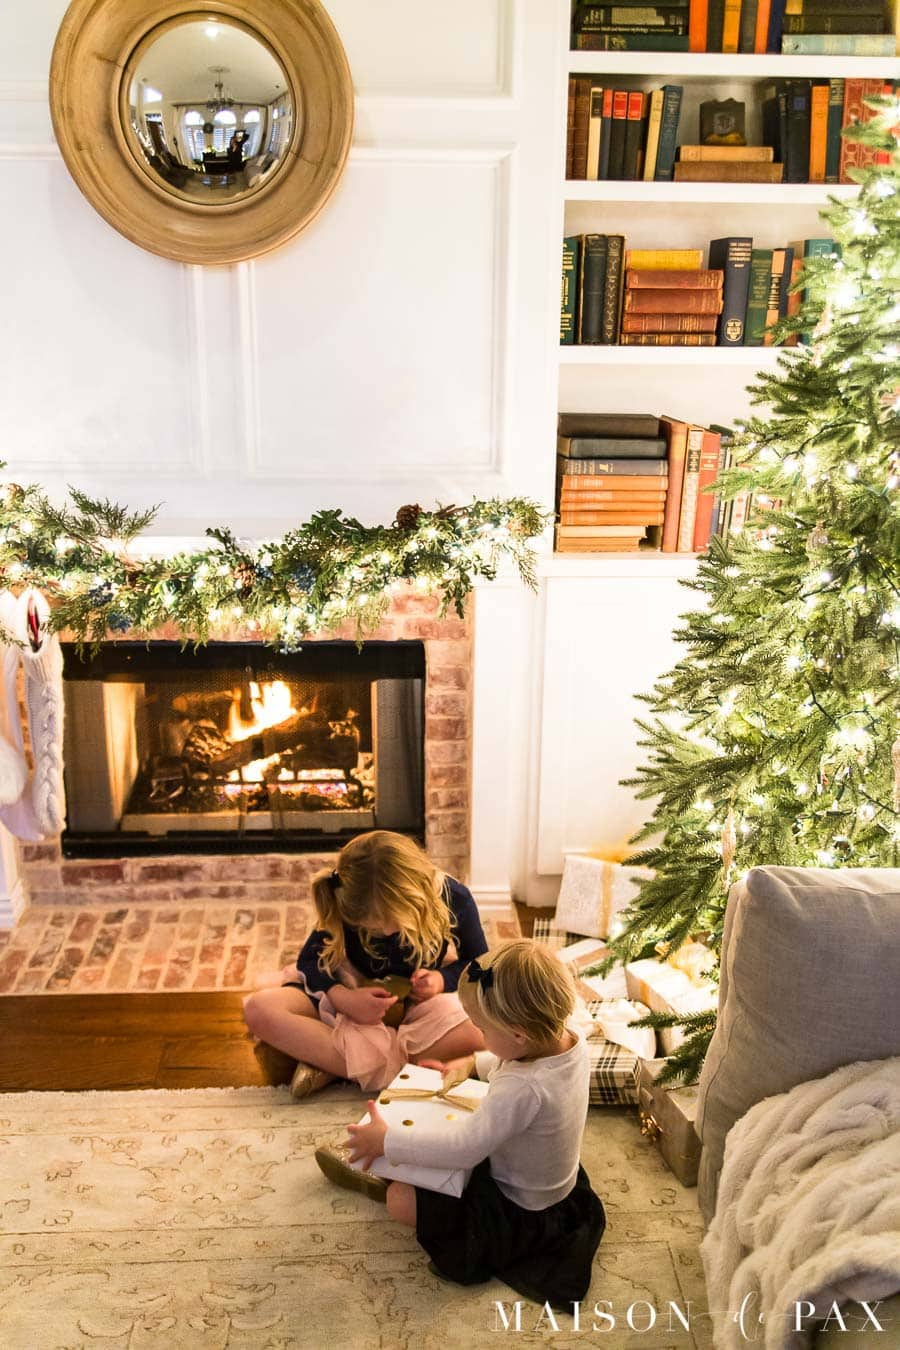 girls looking at presents under Christmas tree by fireplace | Maison de Pax